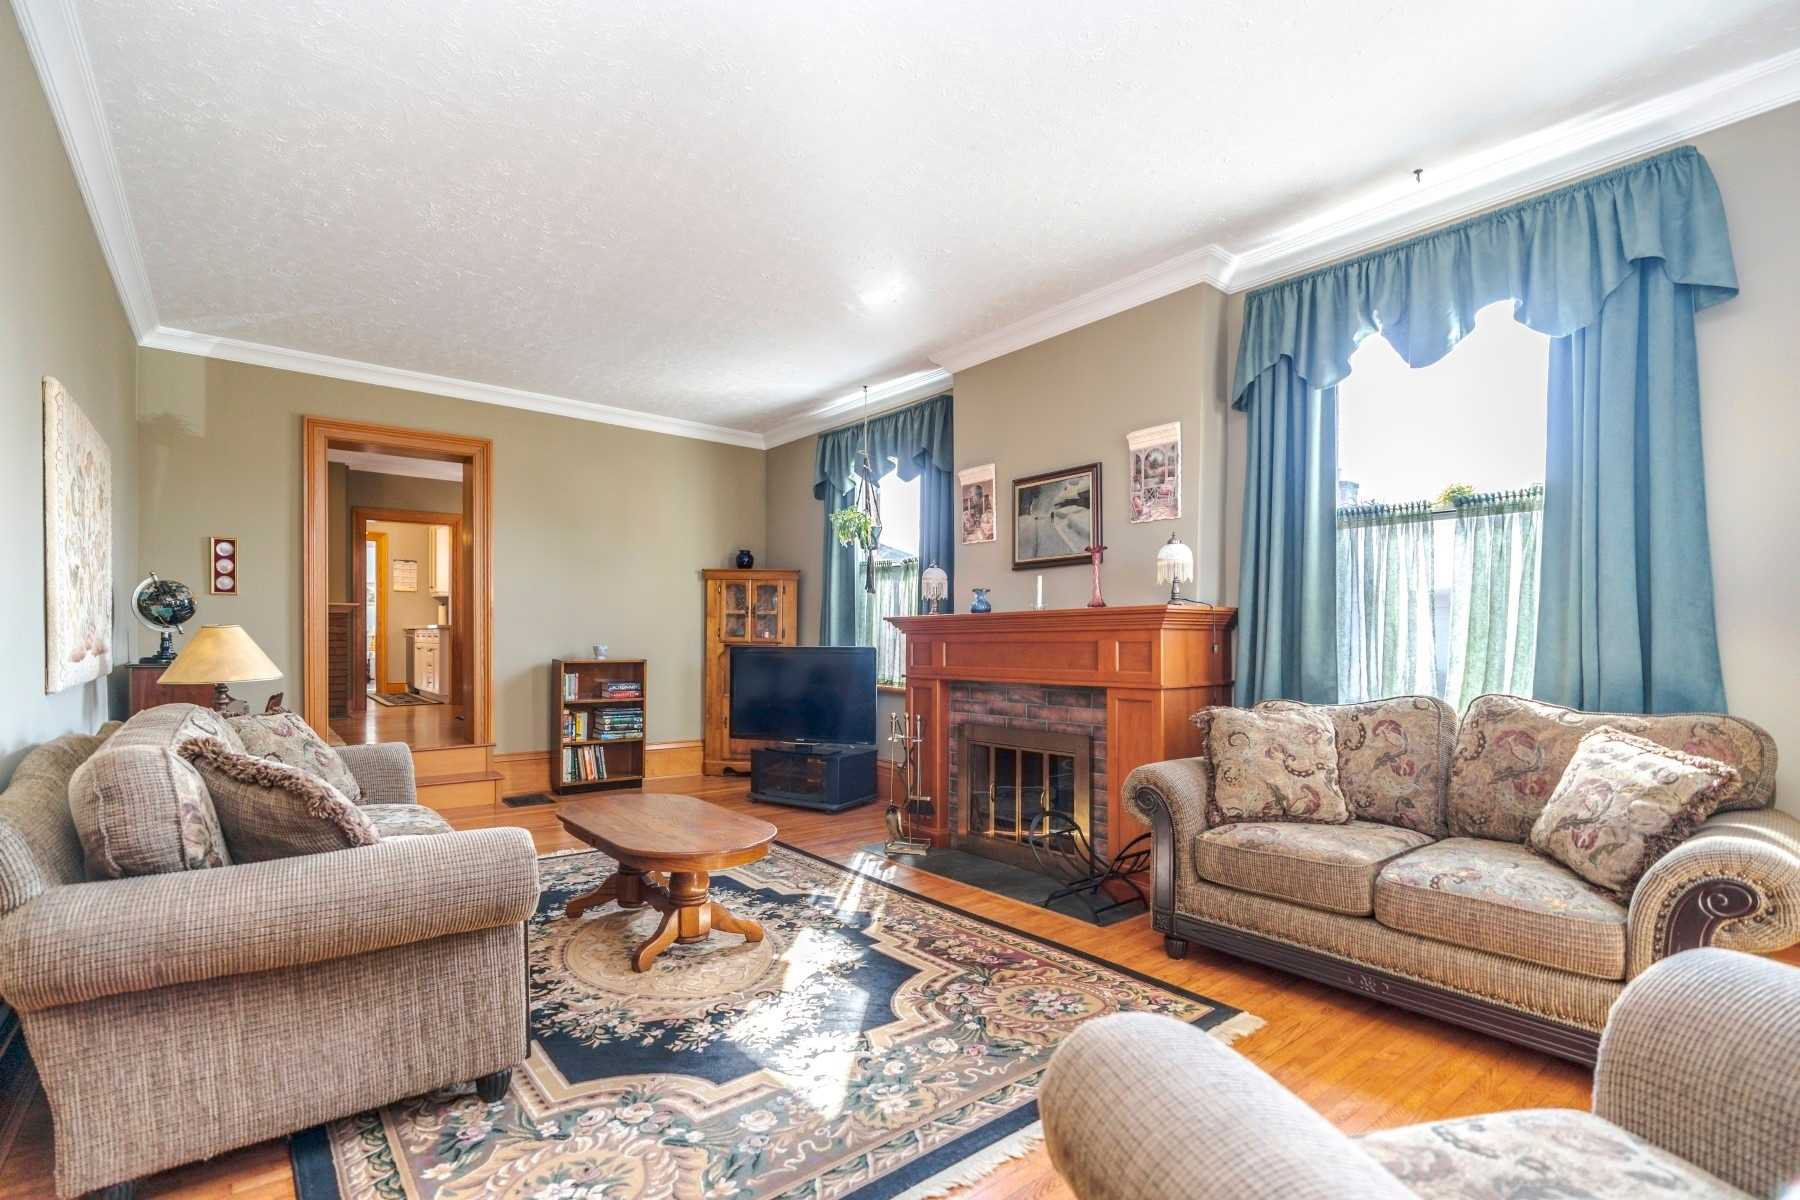 Photo 3: Photos: 1009 S Centre Street in Whitby: Downtown Whitby House (Bungalow) for sale : MLS®# E4714116